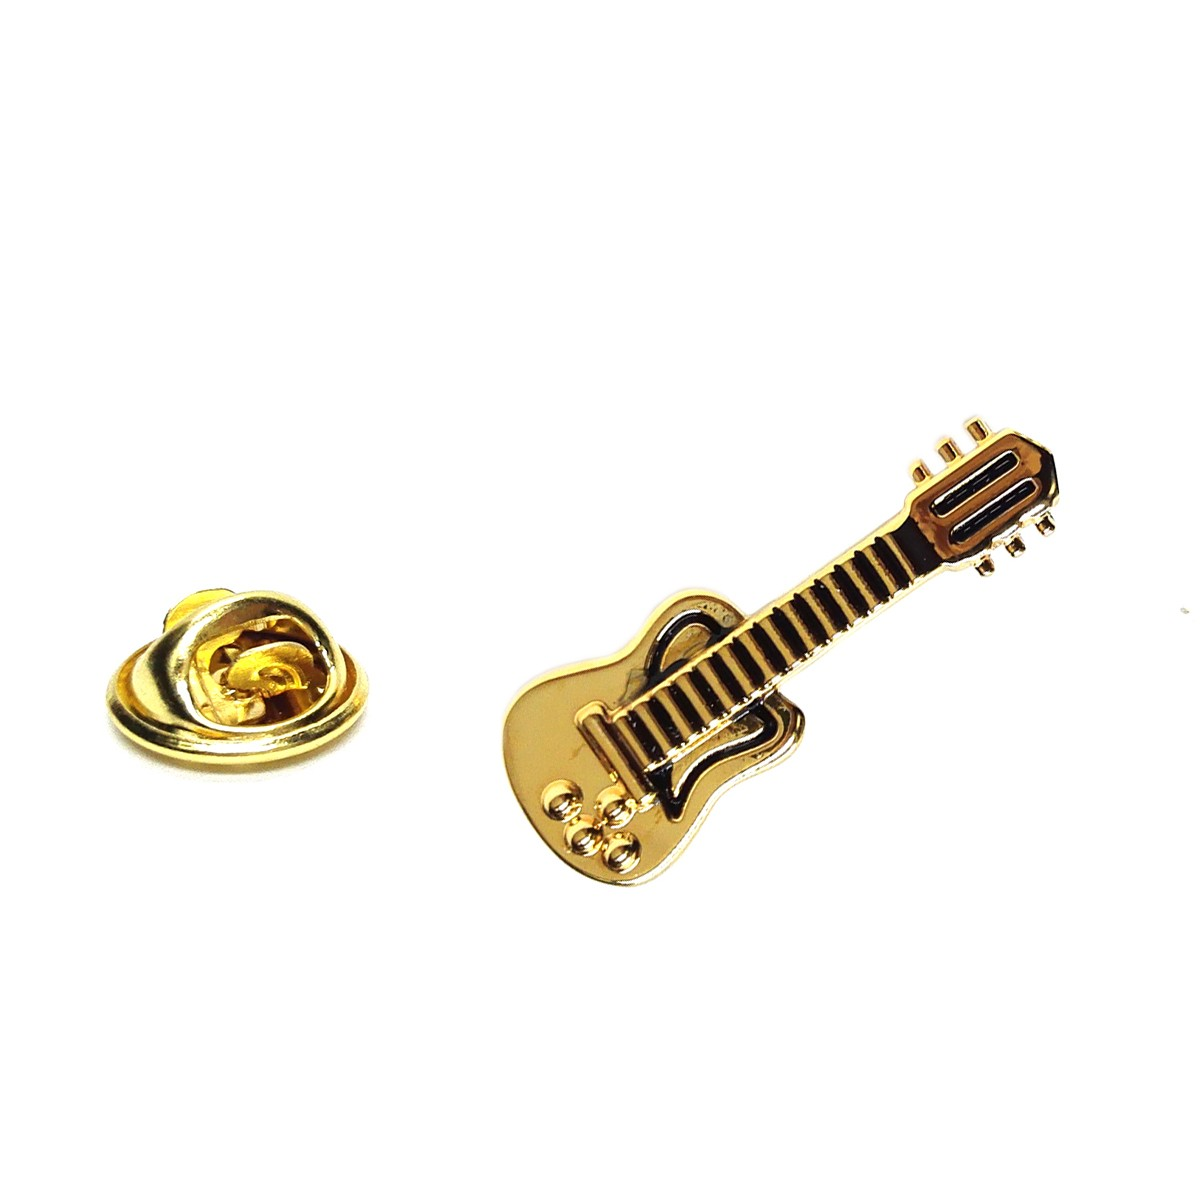 Pin Badge Electric Guitar Gold Sparkle Gift